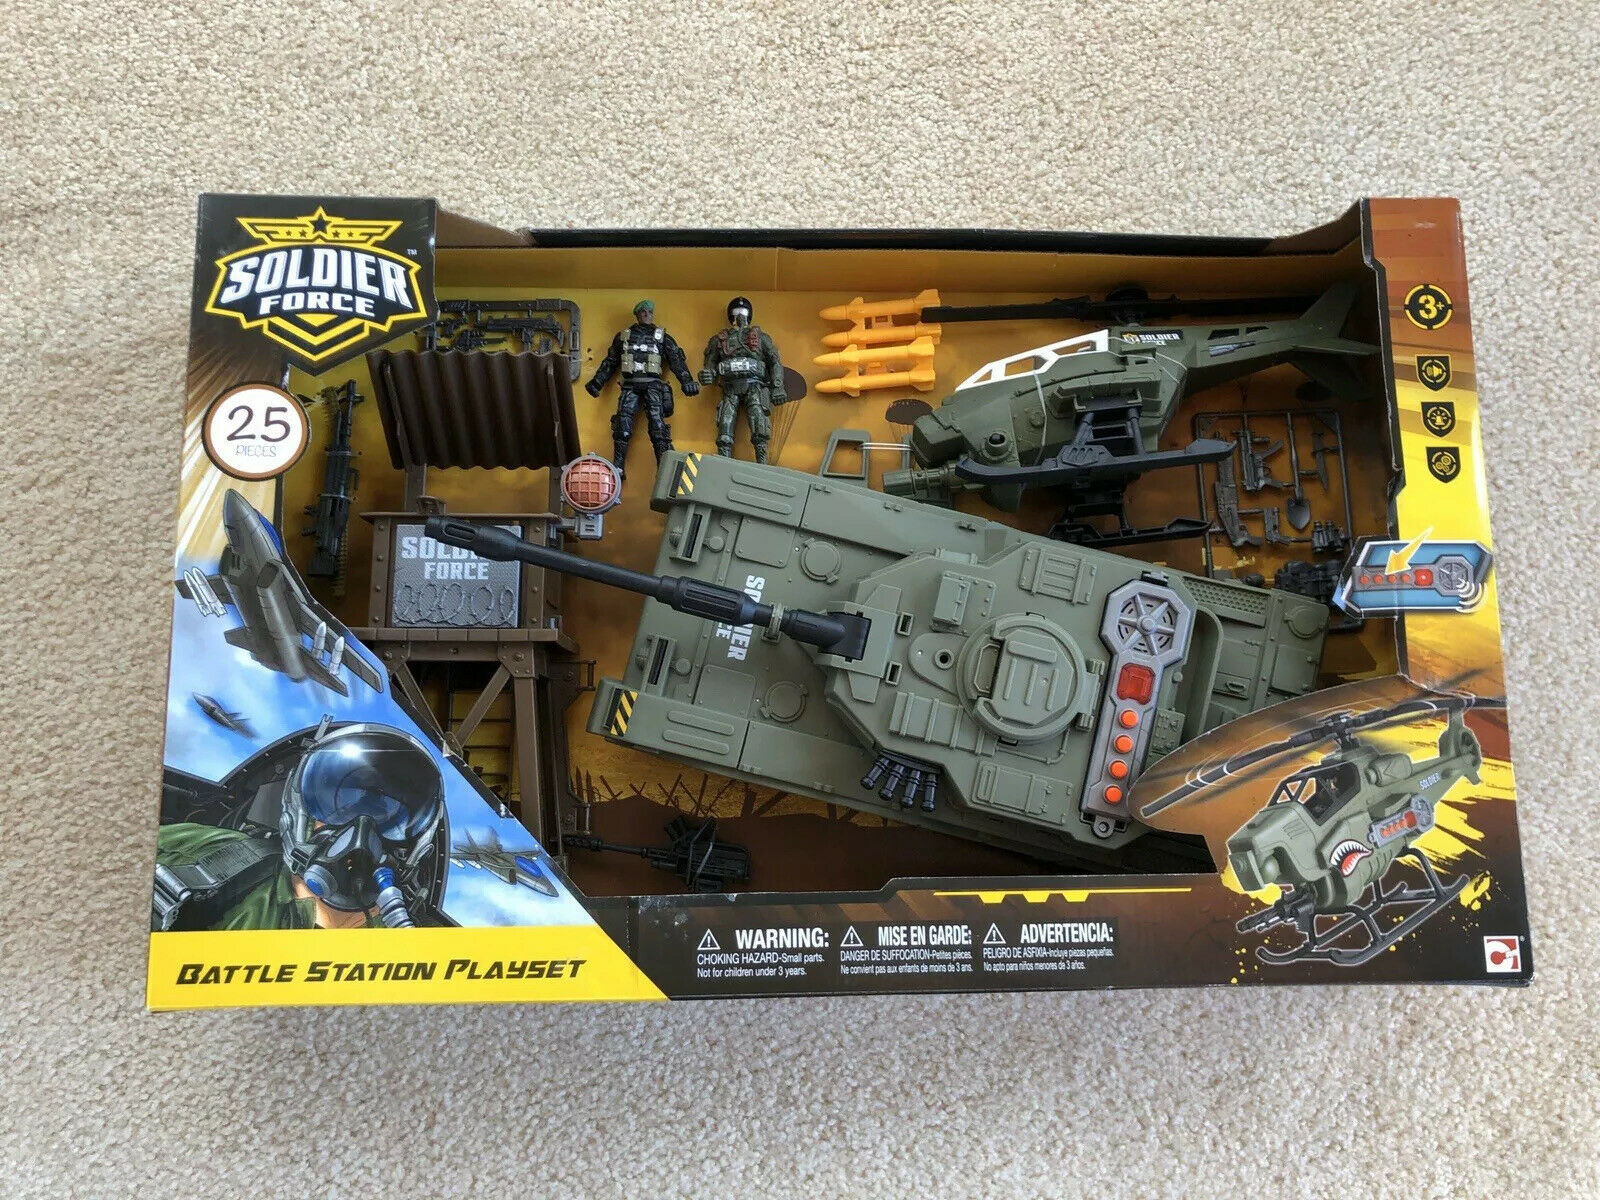 Soldier Force Battle Station Playset Tank Helicopter Chap Mei 25 Piece In Box